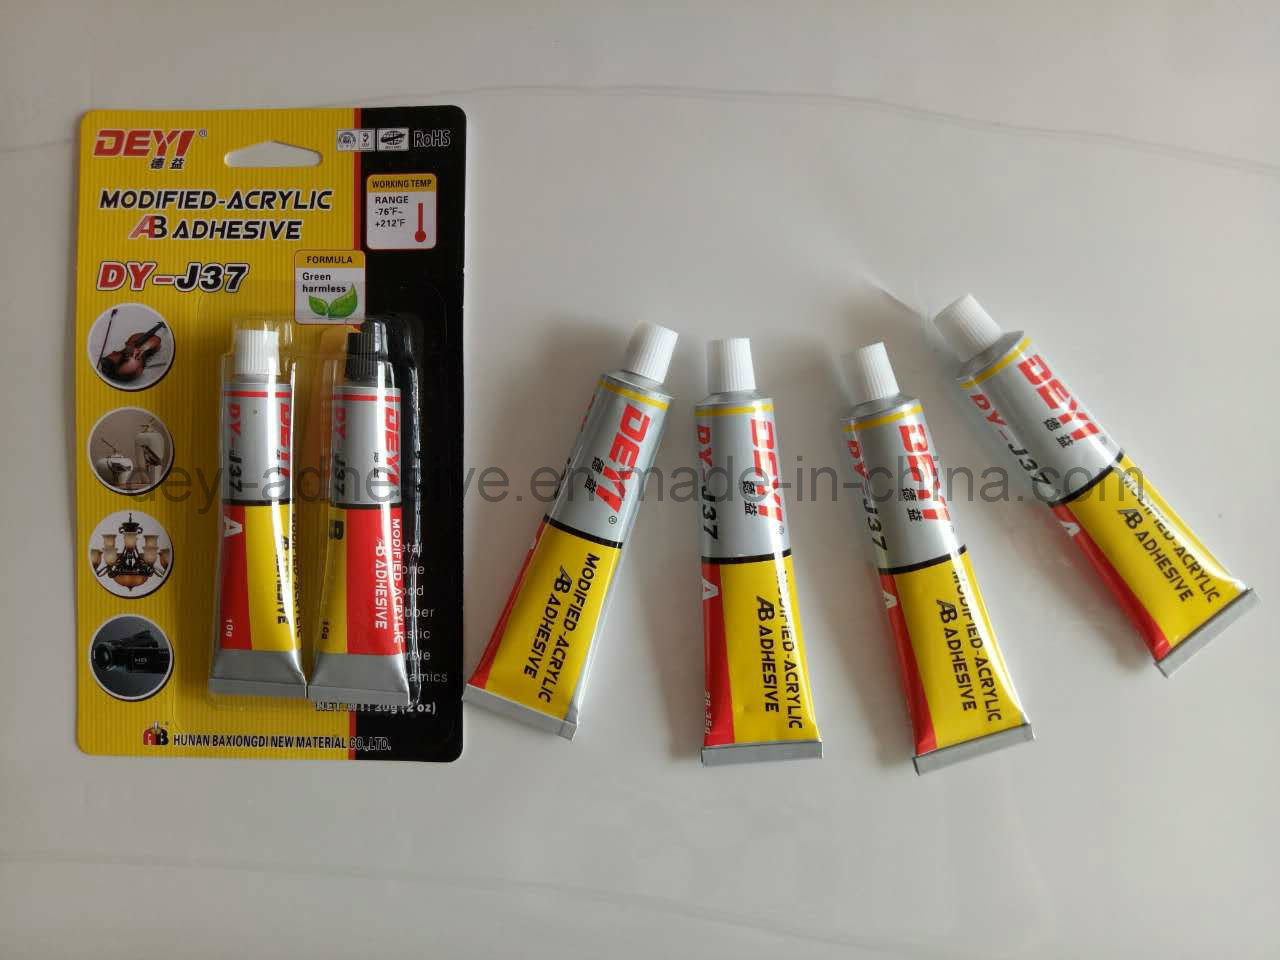 The Latest High Quality Modified-Acrylic Adhesive